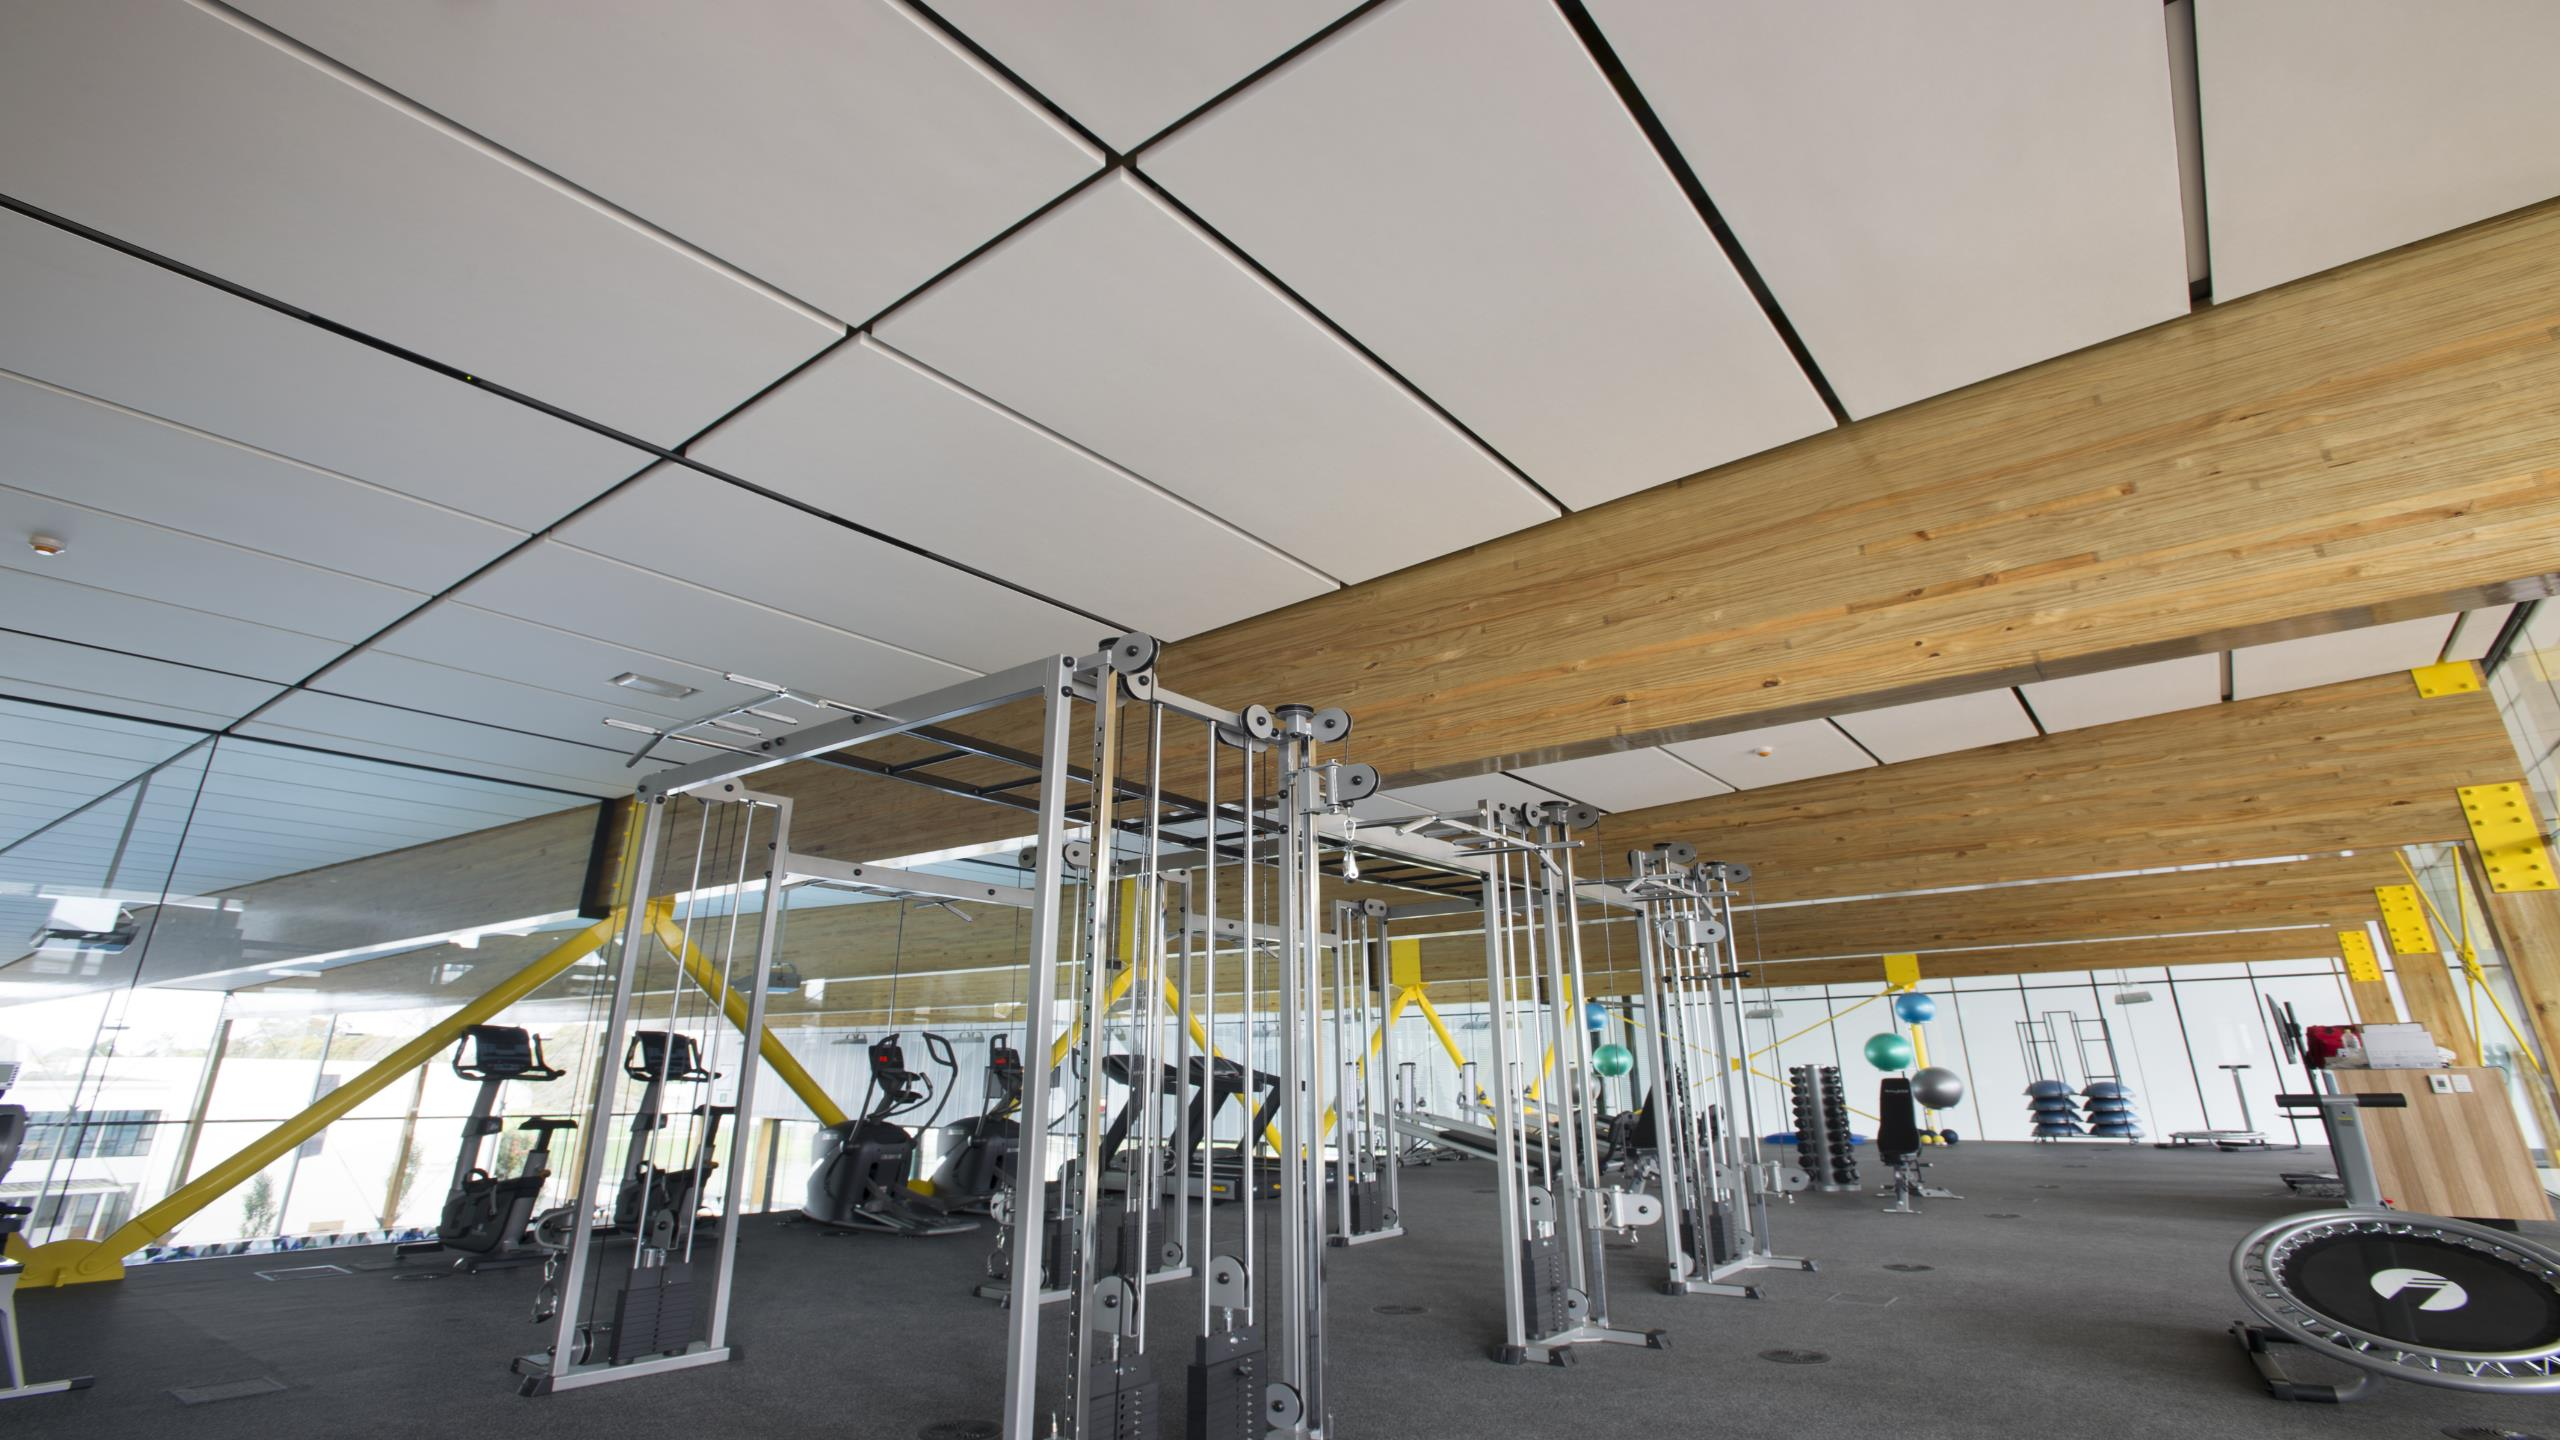 St Cuthberts Girls School swimming pool complex ceiling showing Triton Cloud pool panels installed in the gym area